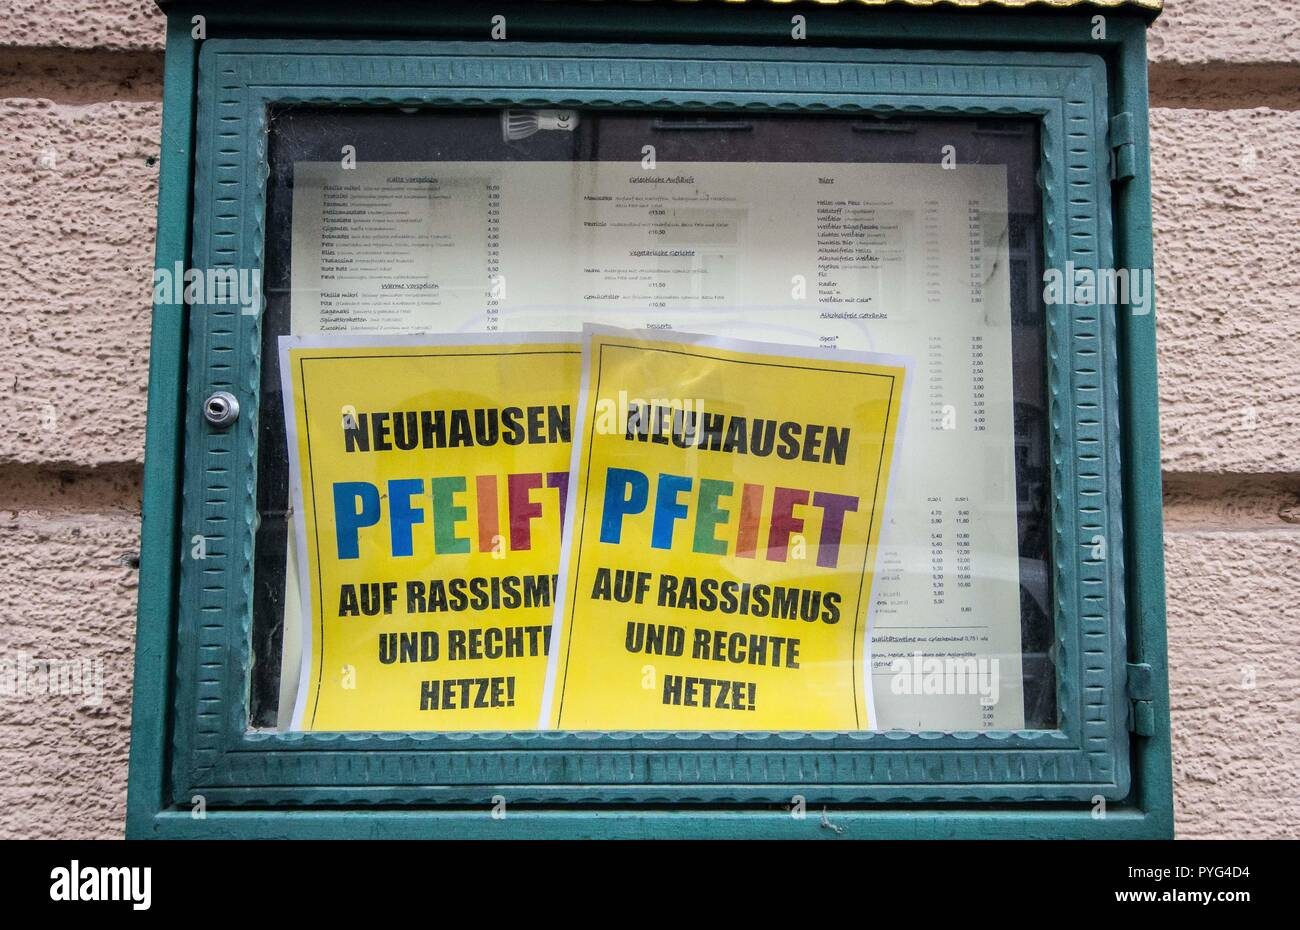 """Munich, Bavaria, Germany. 27th Oct, 2018. A restaurant displays ''Neuhausen Pfeift'' signs in their display case as part of a business action against Pegida. Attempting to draw more followers and expand PEGIDA into Bavaria, """"Pegida Dresden"""""""" announced an appearance by founders LUTZ BACHMANN and SIEGFRIED DAEBRITZ in Munich's Neuhausen district. Ultimately, the two did not arrive, leaving approximately 40 Pegida followers to march against over 450 counter-demonstrators. Pegida Dresden in Munich is actually Pegida Nuremburg who is attempting to expand south to Munich where the rival P Stock Photo"""